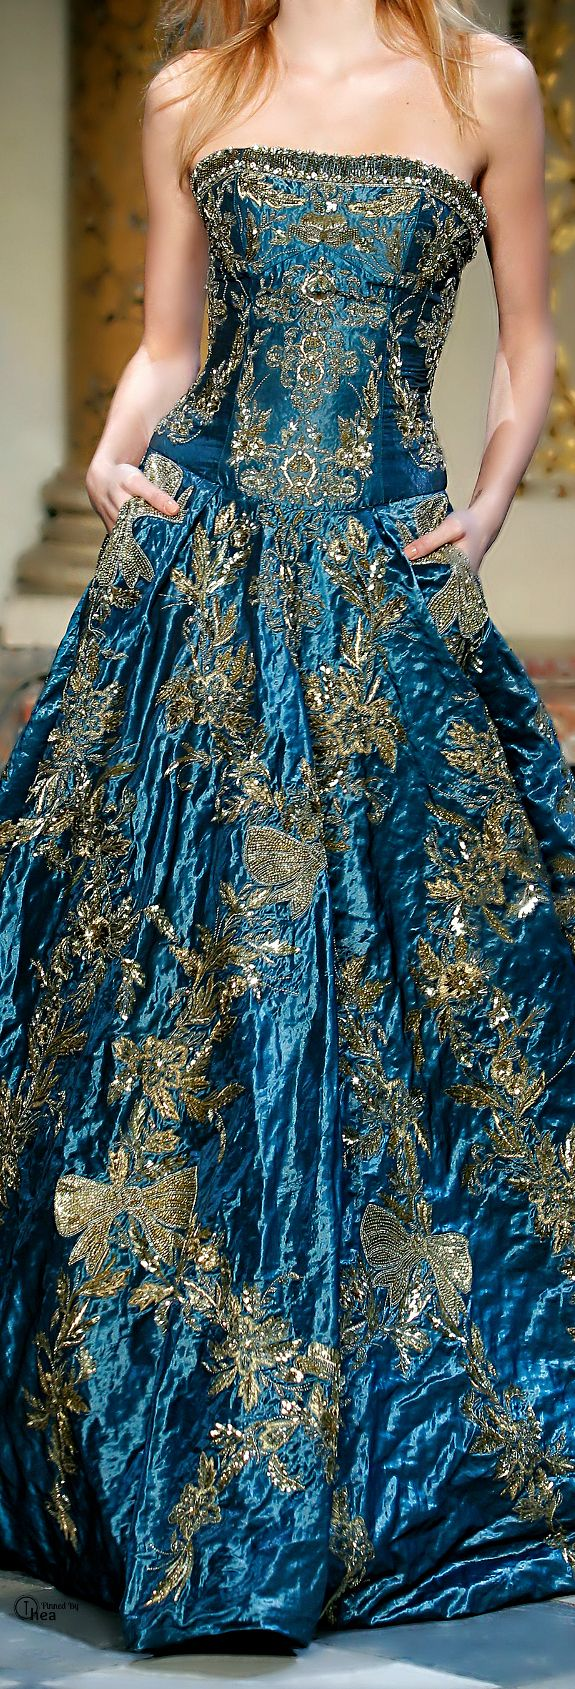 Zuhair Murad. [I don't like strapless or the embroideried bows, but the color with the gold is beautiful]